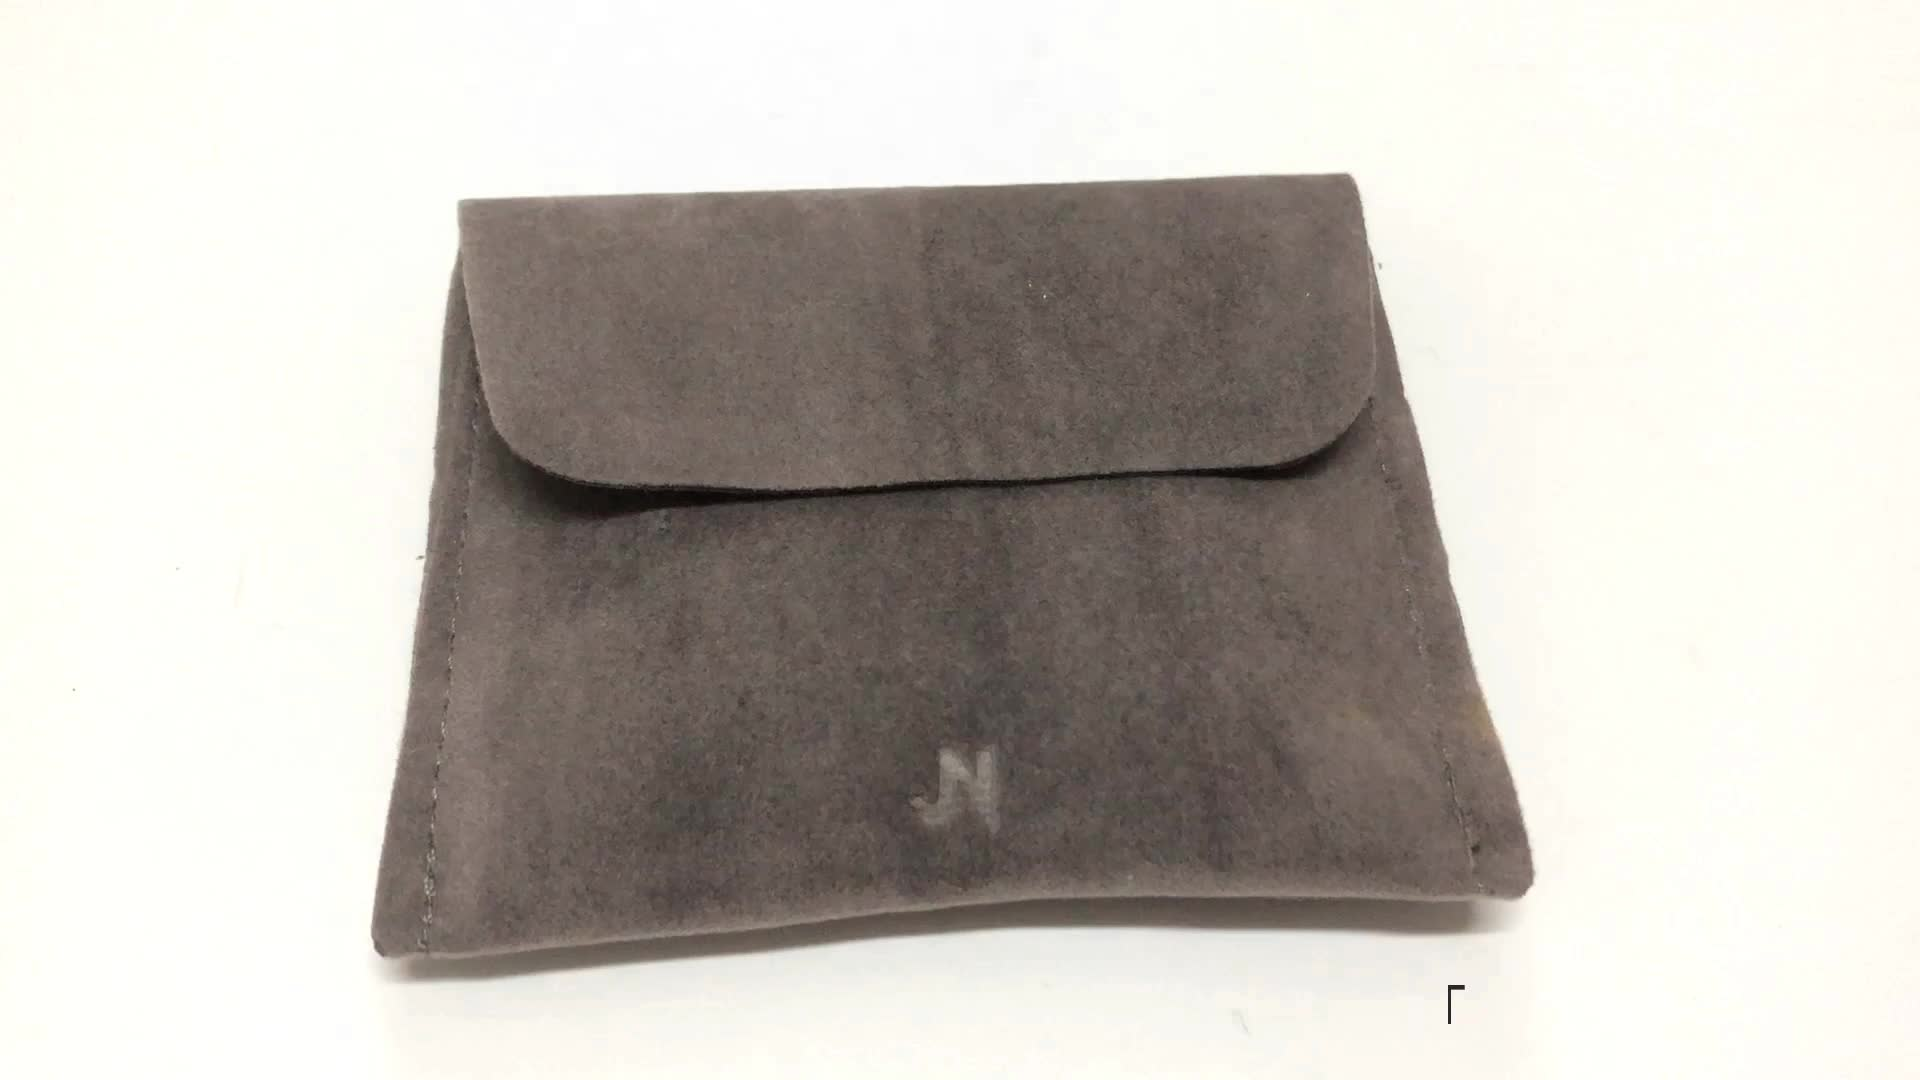 New Arrival Wholesale Velvet Envelope Jewelry Pouch with Printed Logo for Necklace